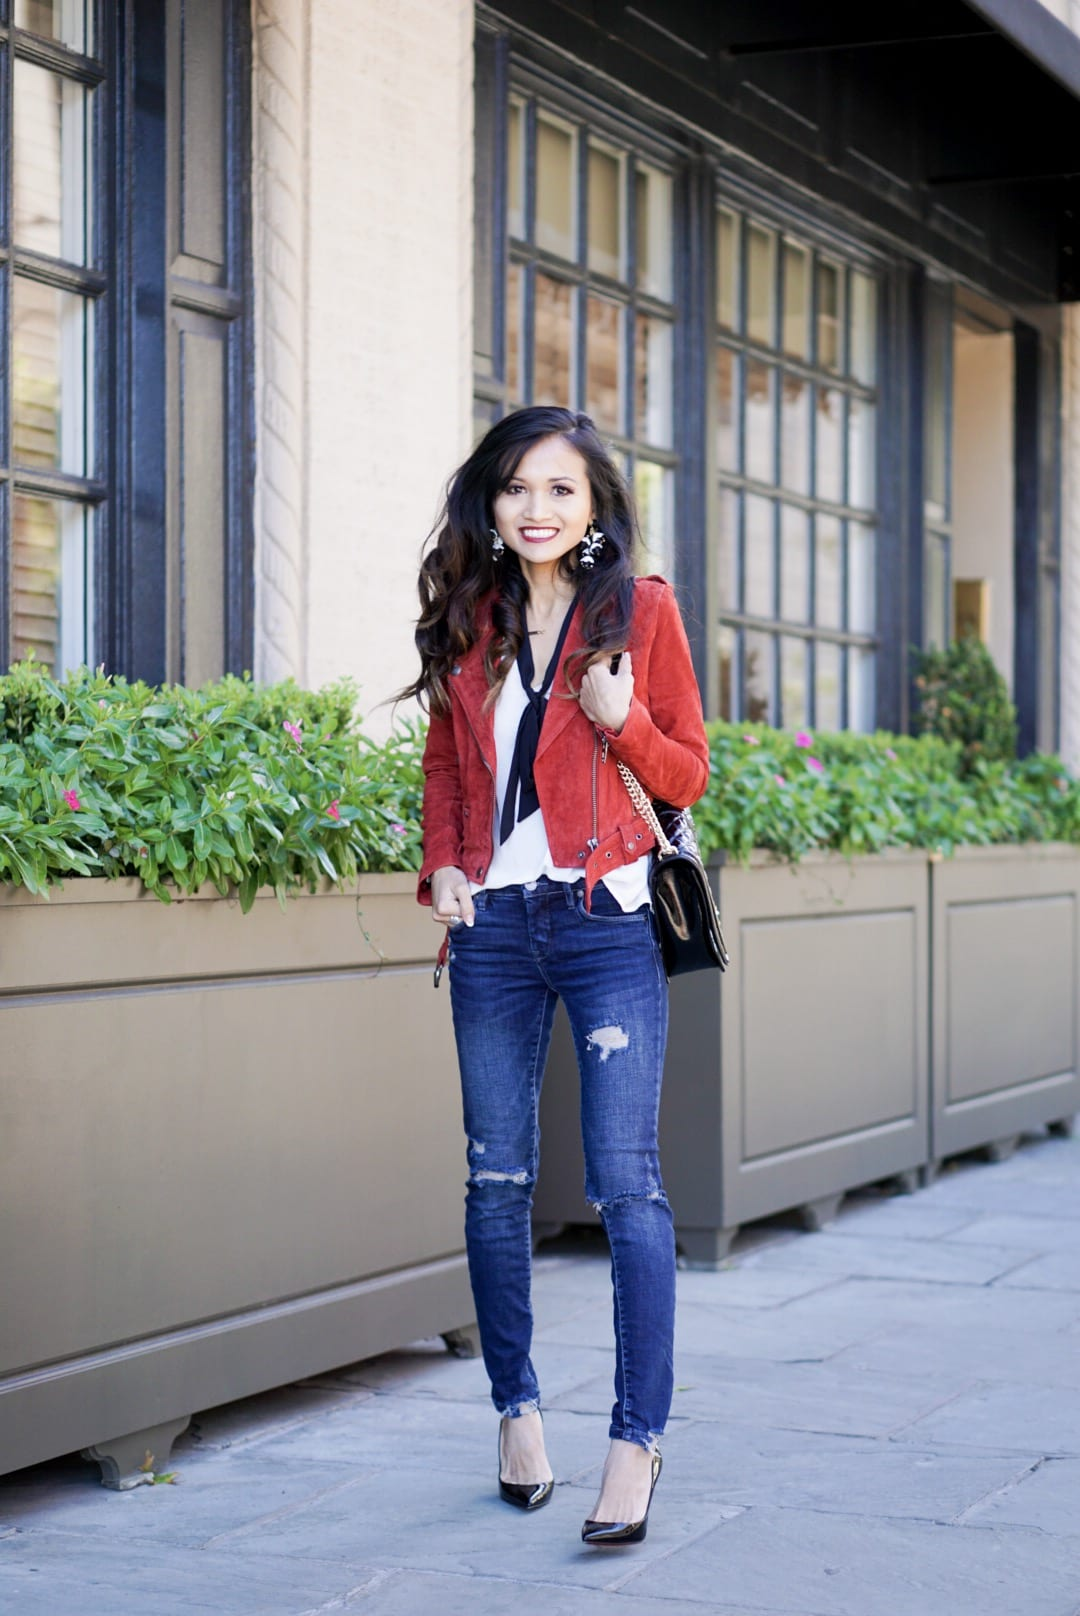 ZAPPOS, blank NYC, blank NYC denim, BLANK NYC MOTO JACKET, SUEDE JACKET, RED JACKET, HOLIDAY OUTFIT, CHRISTMAS OUTFIT, URBANATTITUDE, BAUBLE BAR STATEMENT EARRINGS, REBECCA MINKOFF CROSSBODY BAG, RED BOTTOMS, CHRISTIAN LOUBOUTIN HEELS, BLACK HEELS ,